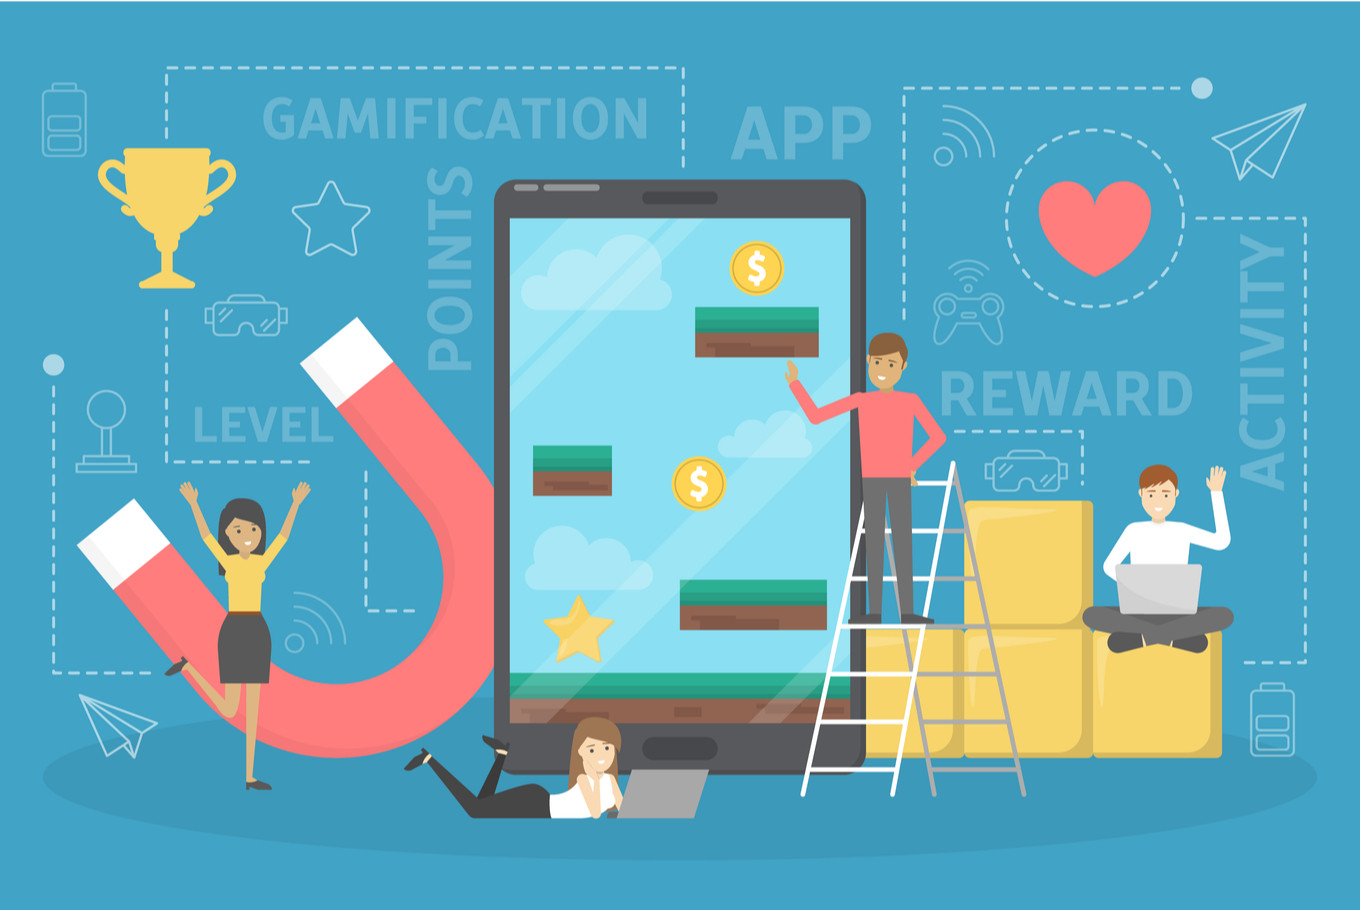 Increase your KPI by using gamification and compete with world-class businesses